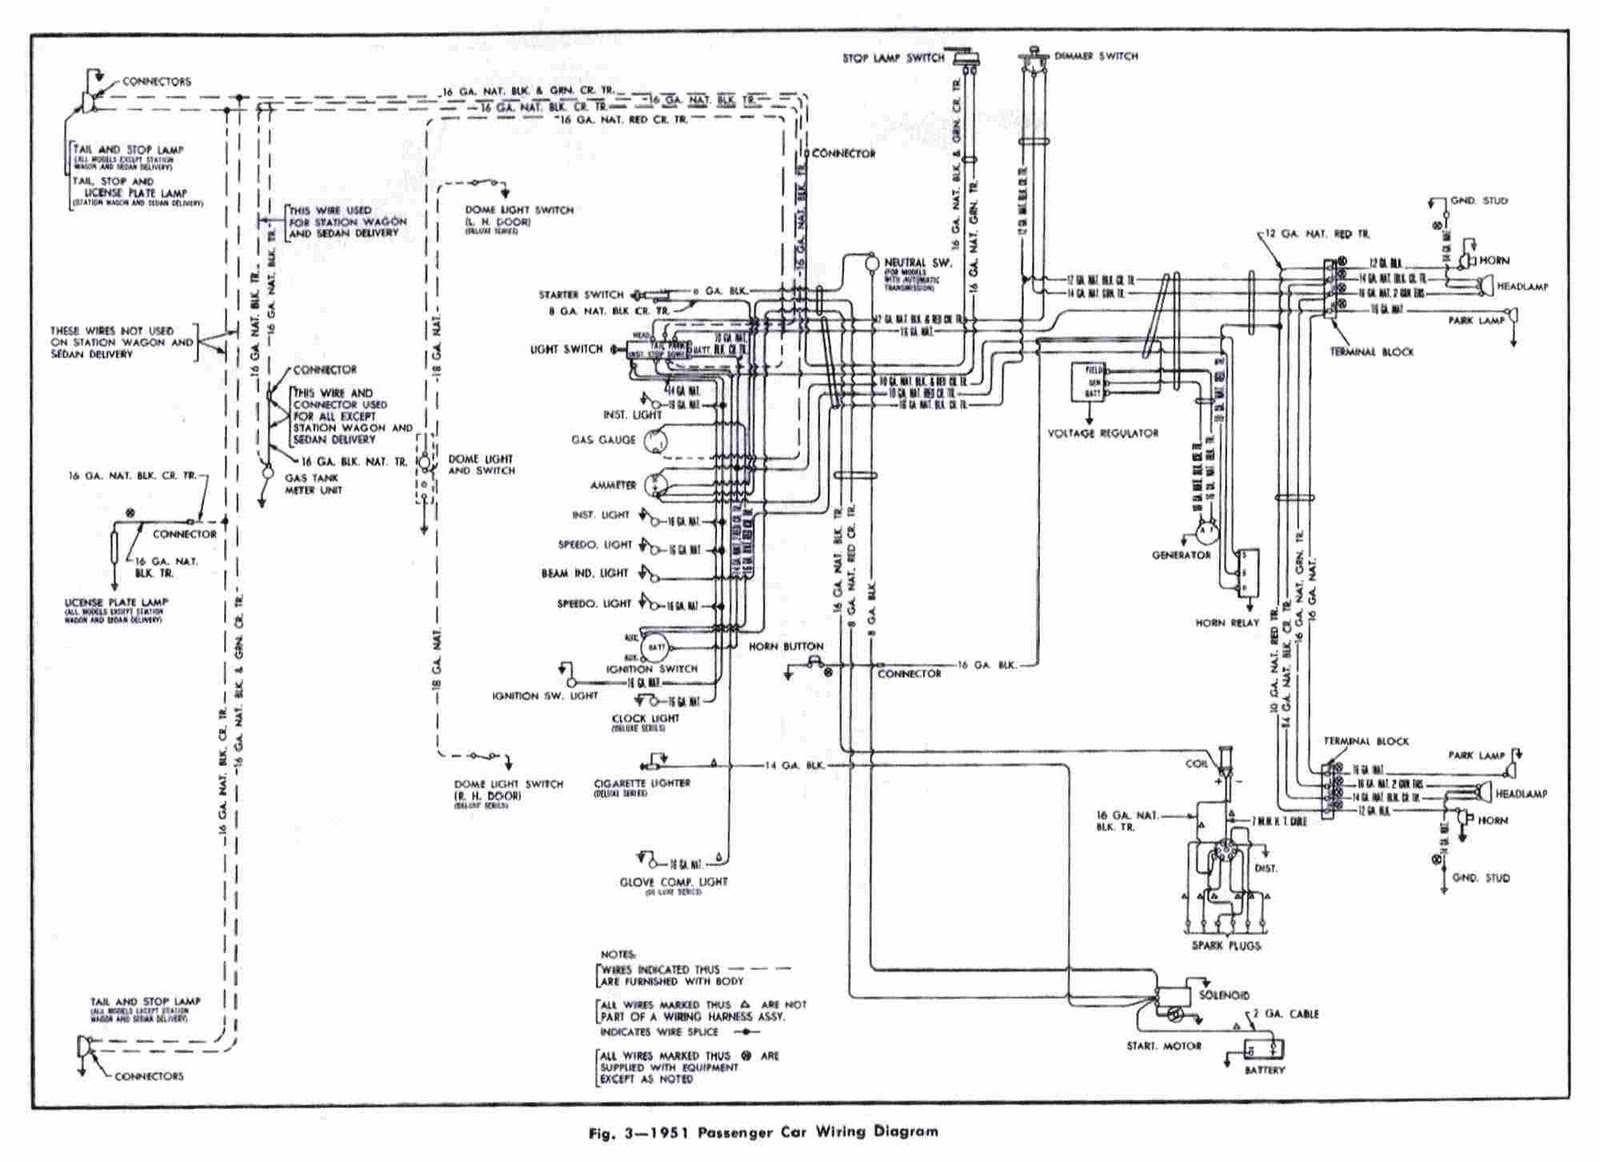 automobile wire diagram wire diagram 7 wire pigtail chevrolet passenger car 1951 wiring diagram | all about ... #15